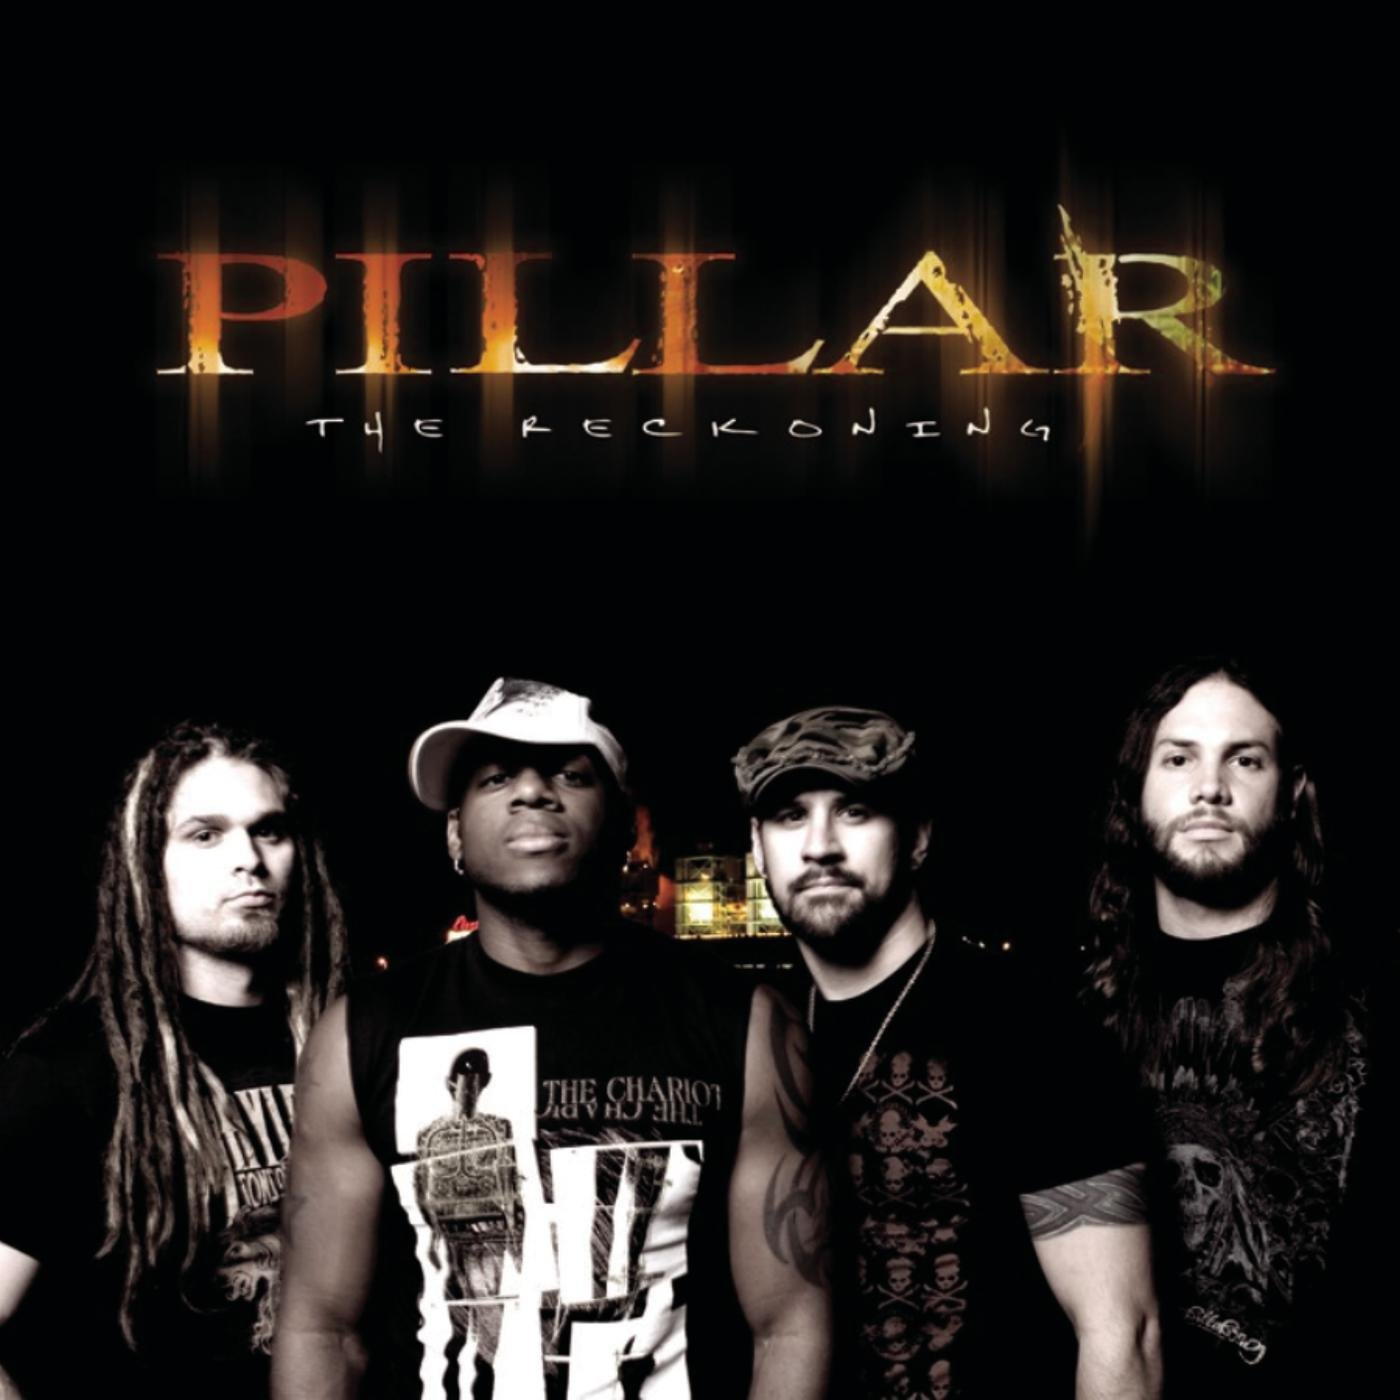 Pillar-The Reckoning-SPECIAL EDITION-CD-FLAC-2006-FLACME